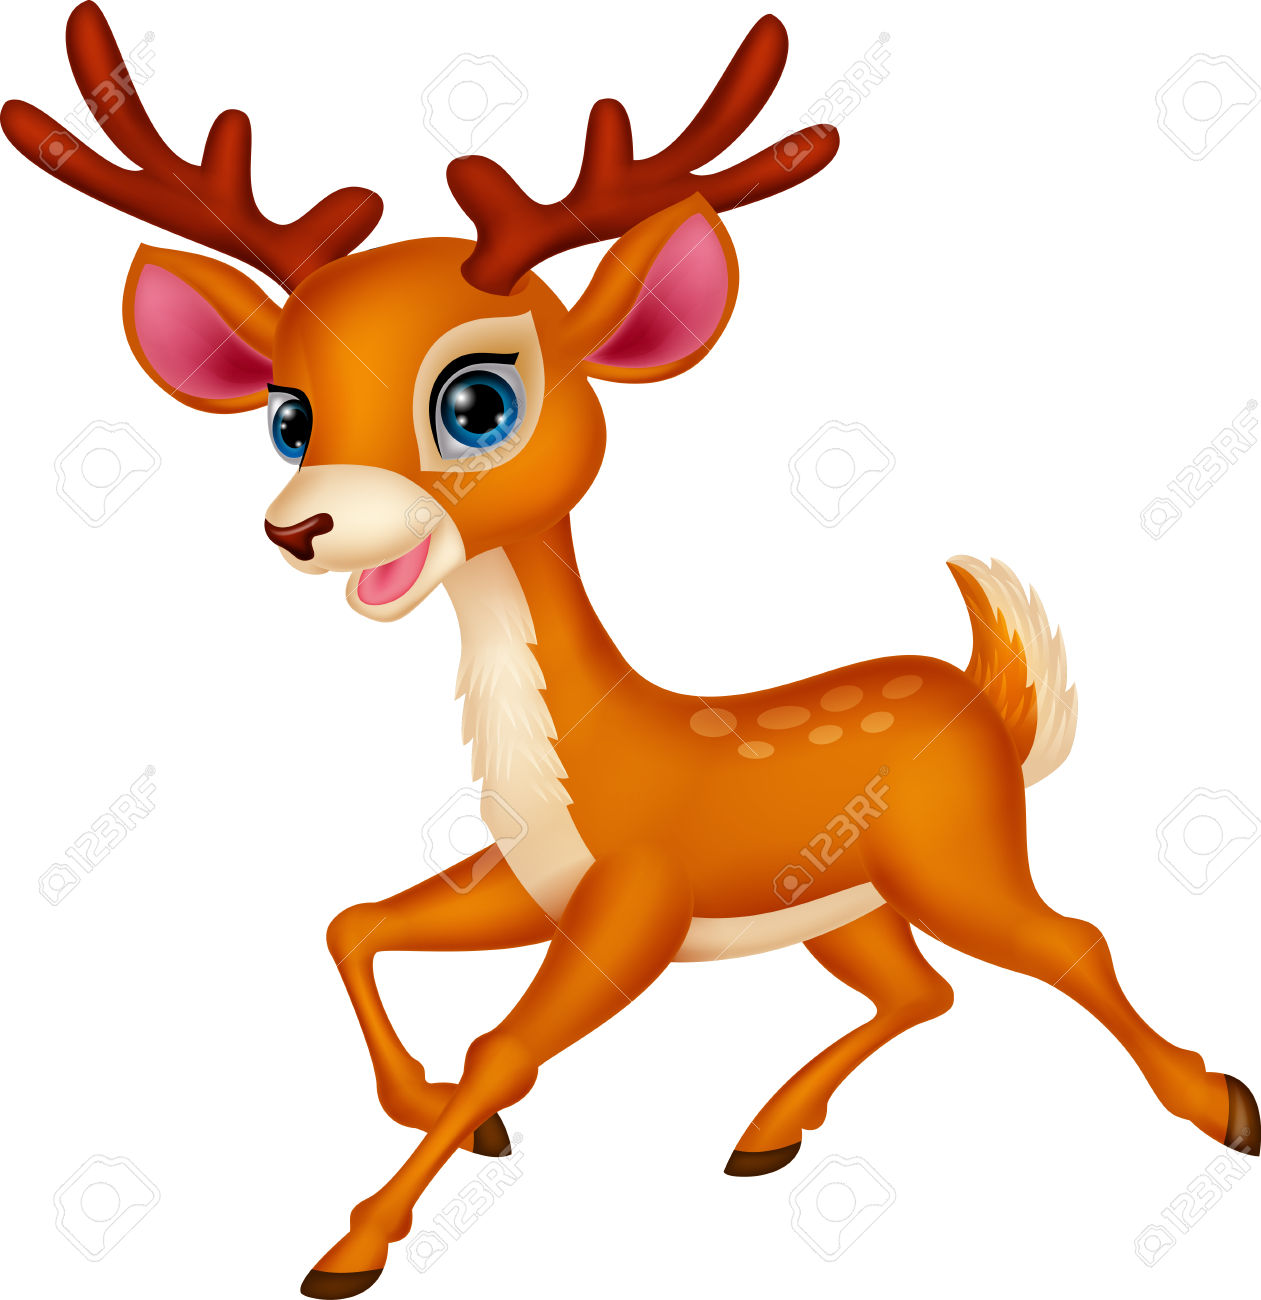 Christmas Deer Clipart At Getdrawings Com Free For